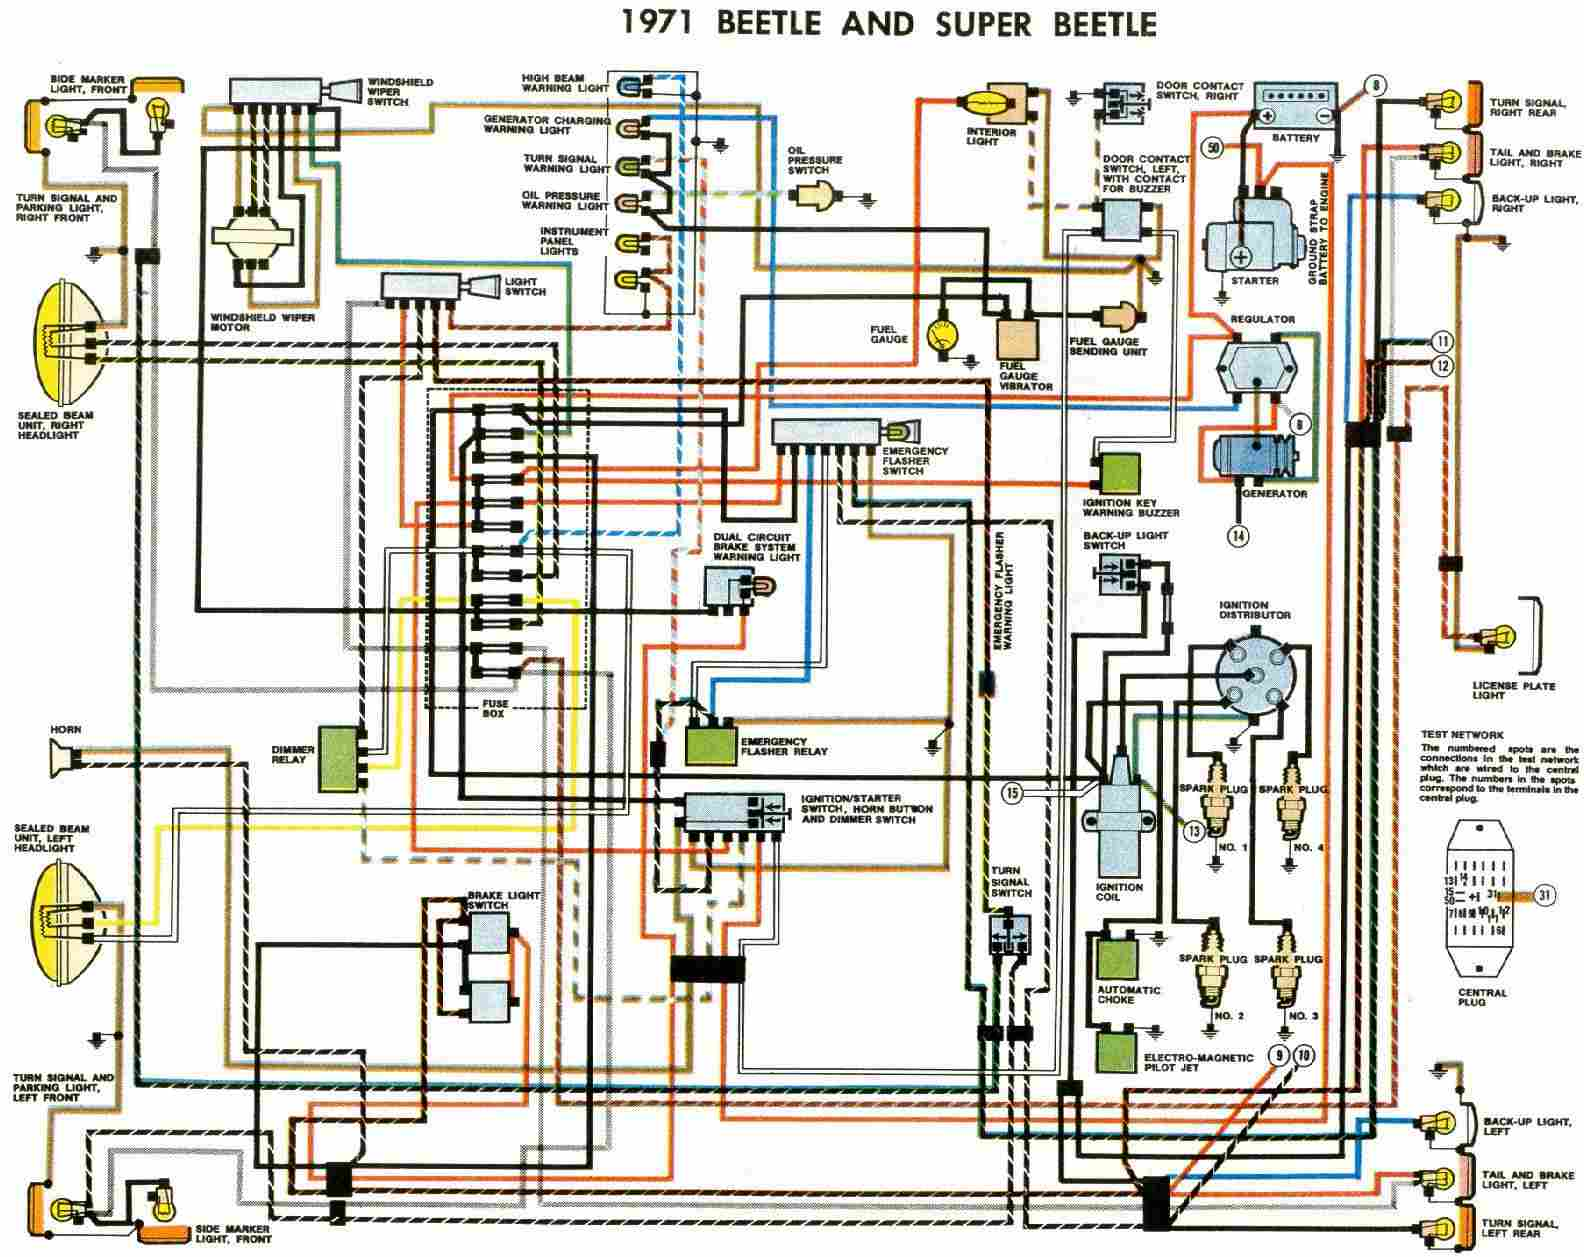 1975 volkswagen beetle wiring diagram free download